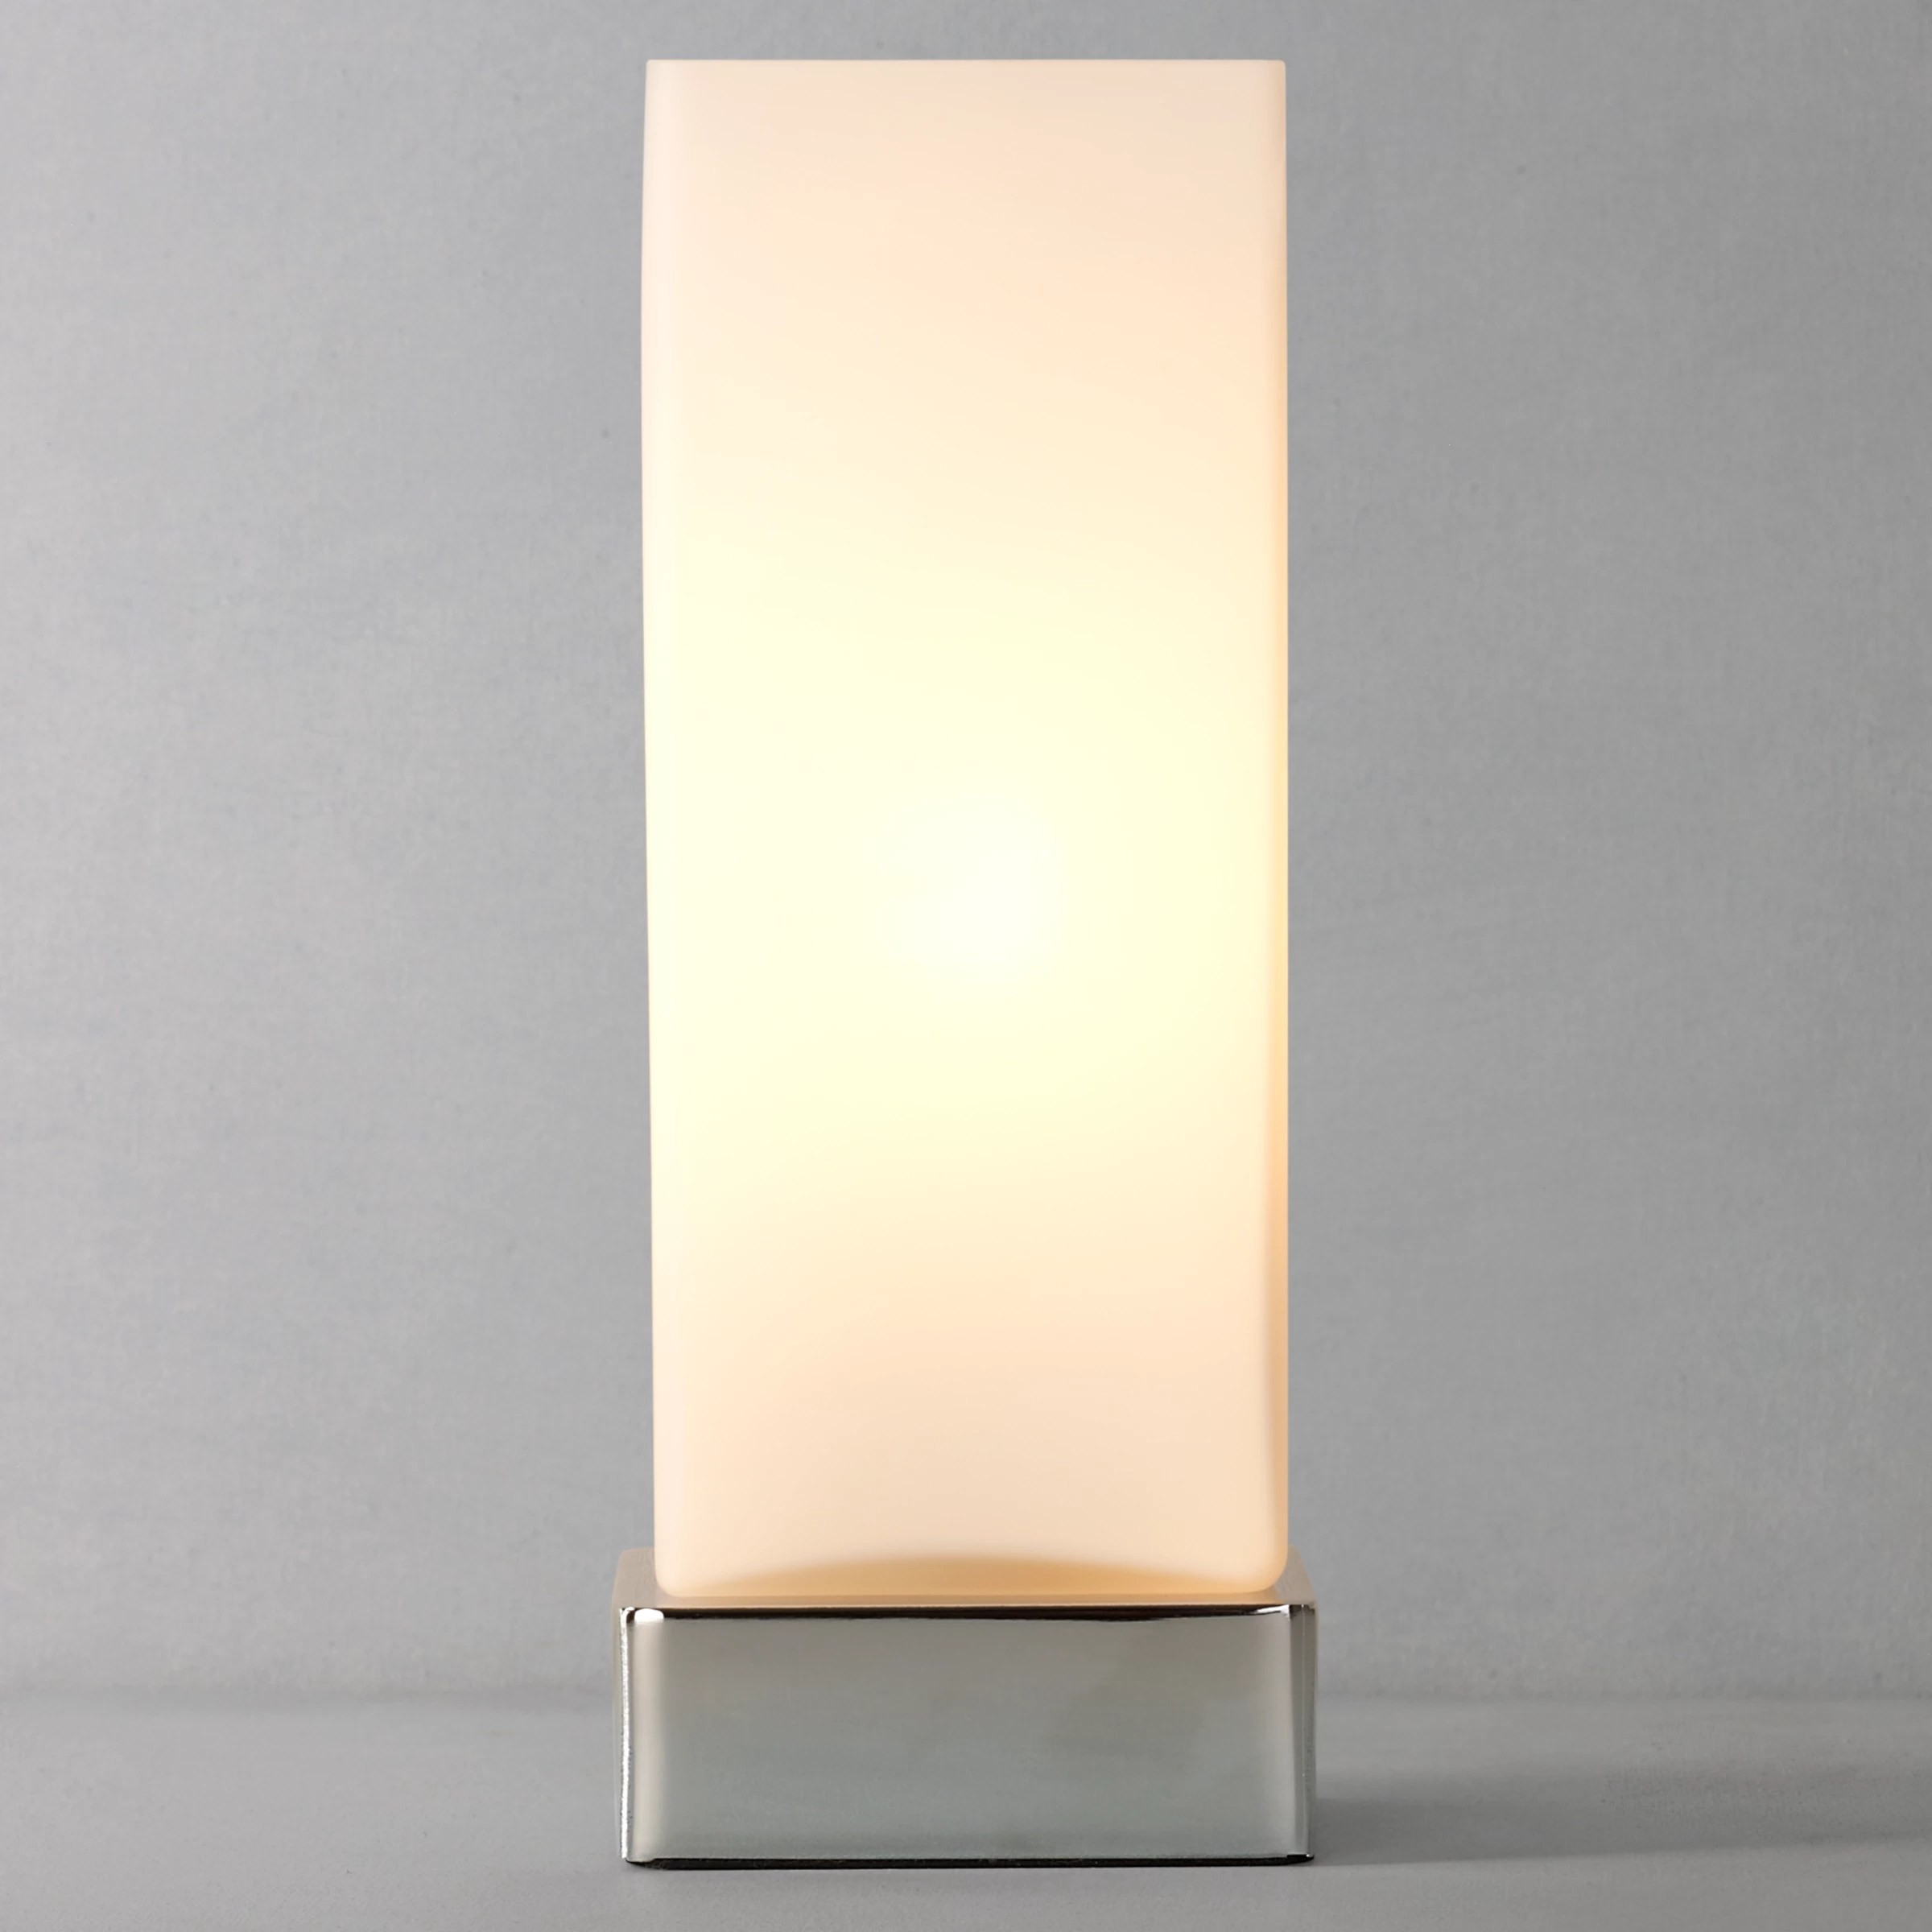 Bedside Lamps Online Australia John Lewis Mitch Touch Lamp At John Lewis